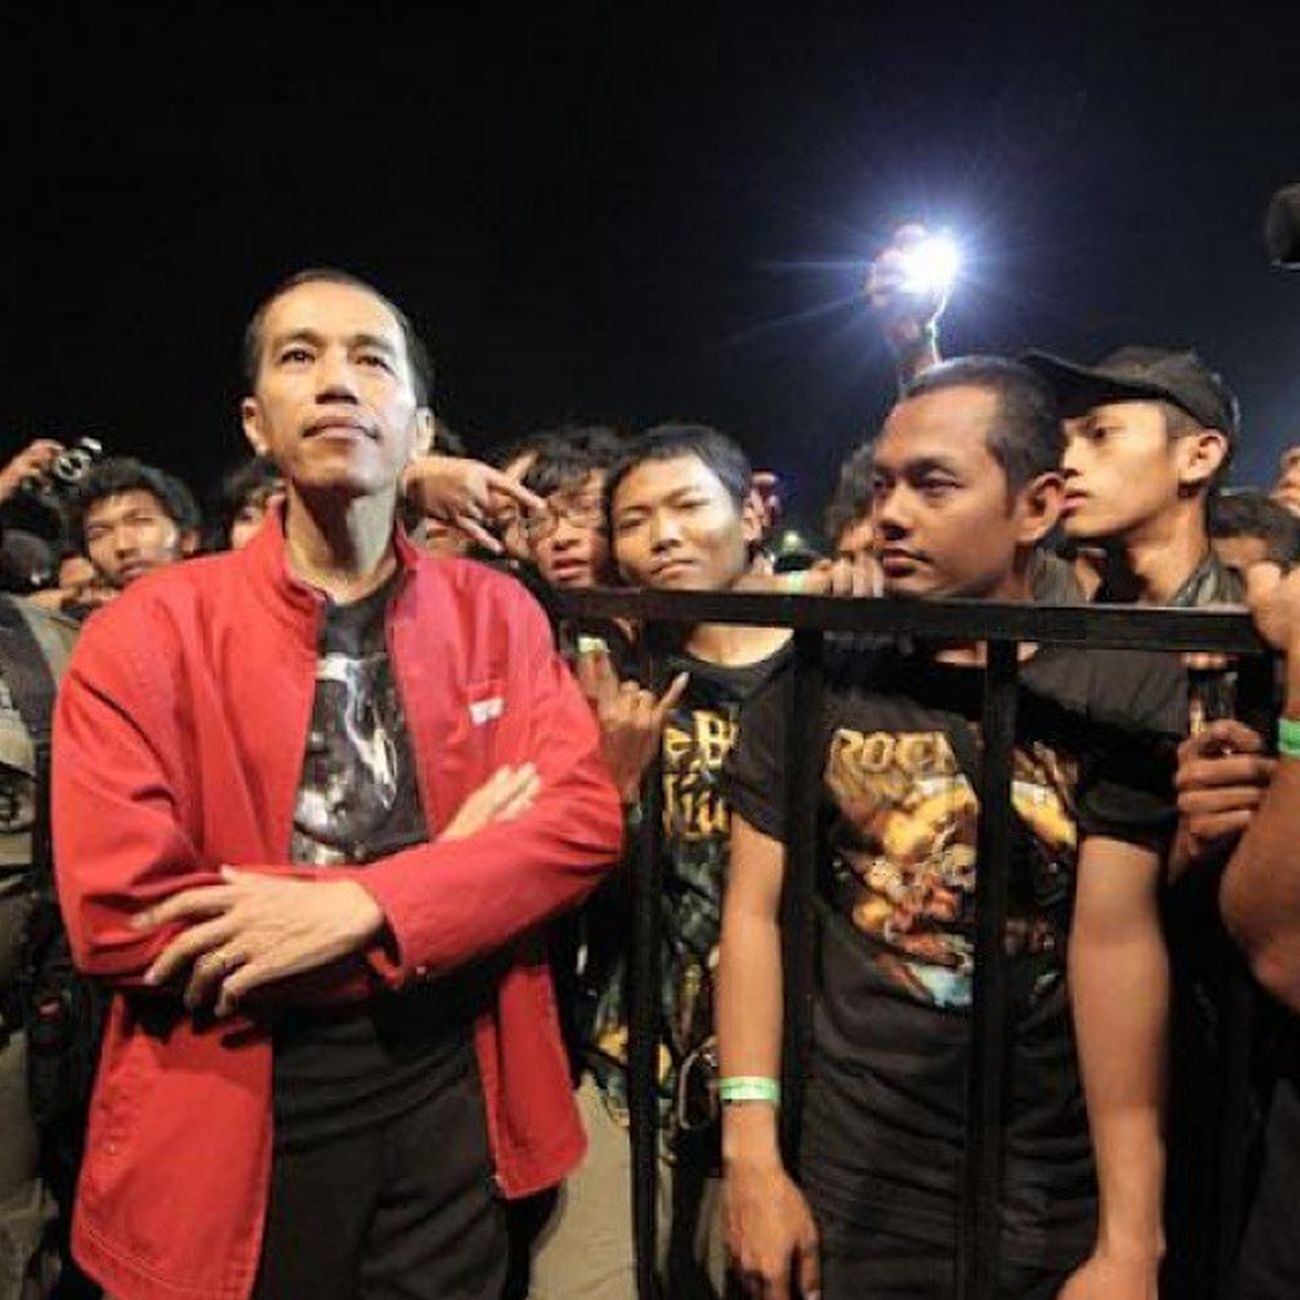 Irjokowi Presiden Metal INDONESIA Live RIS2013 Day1 Stage Crowd